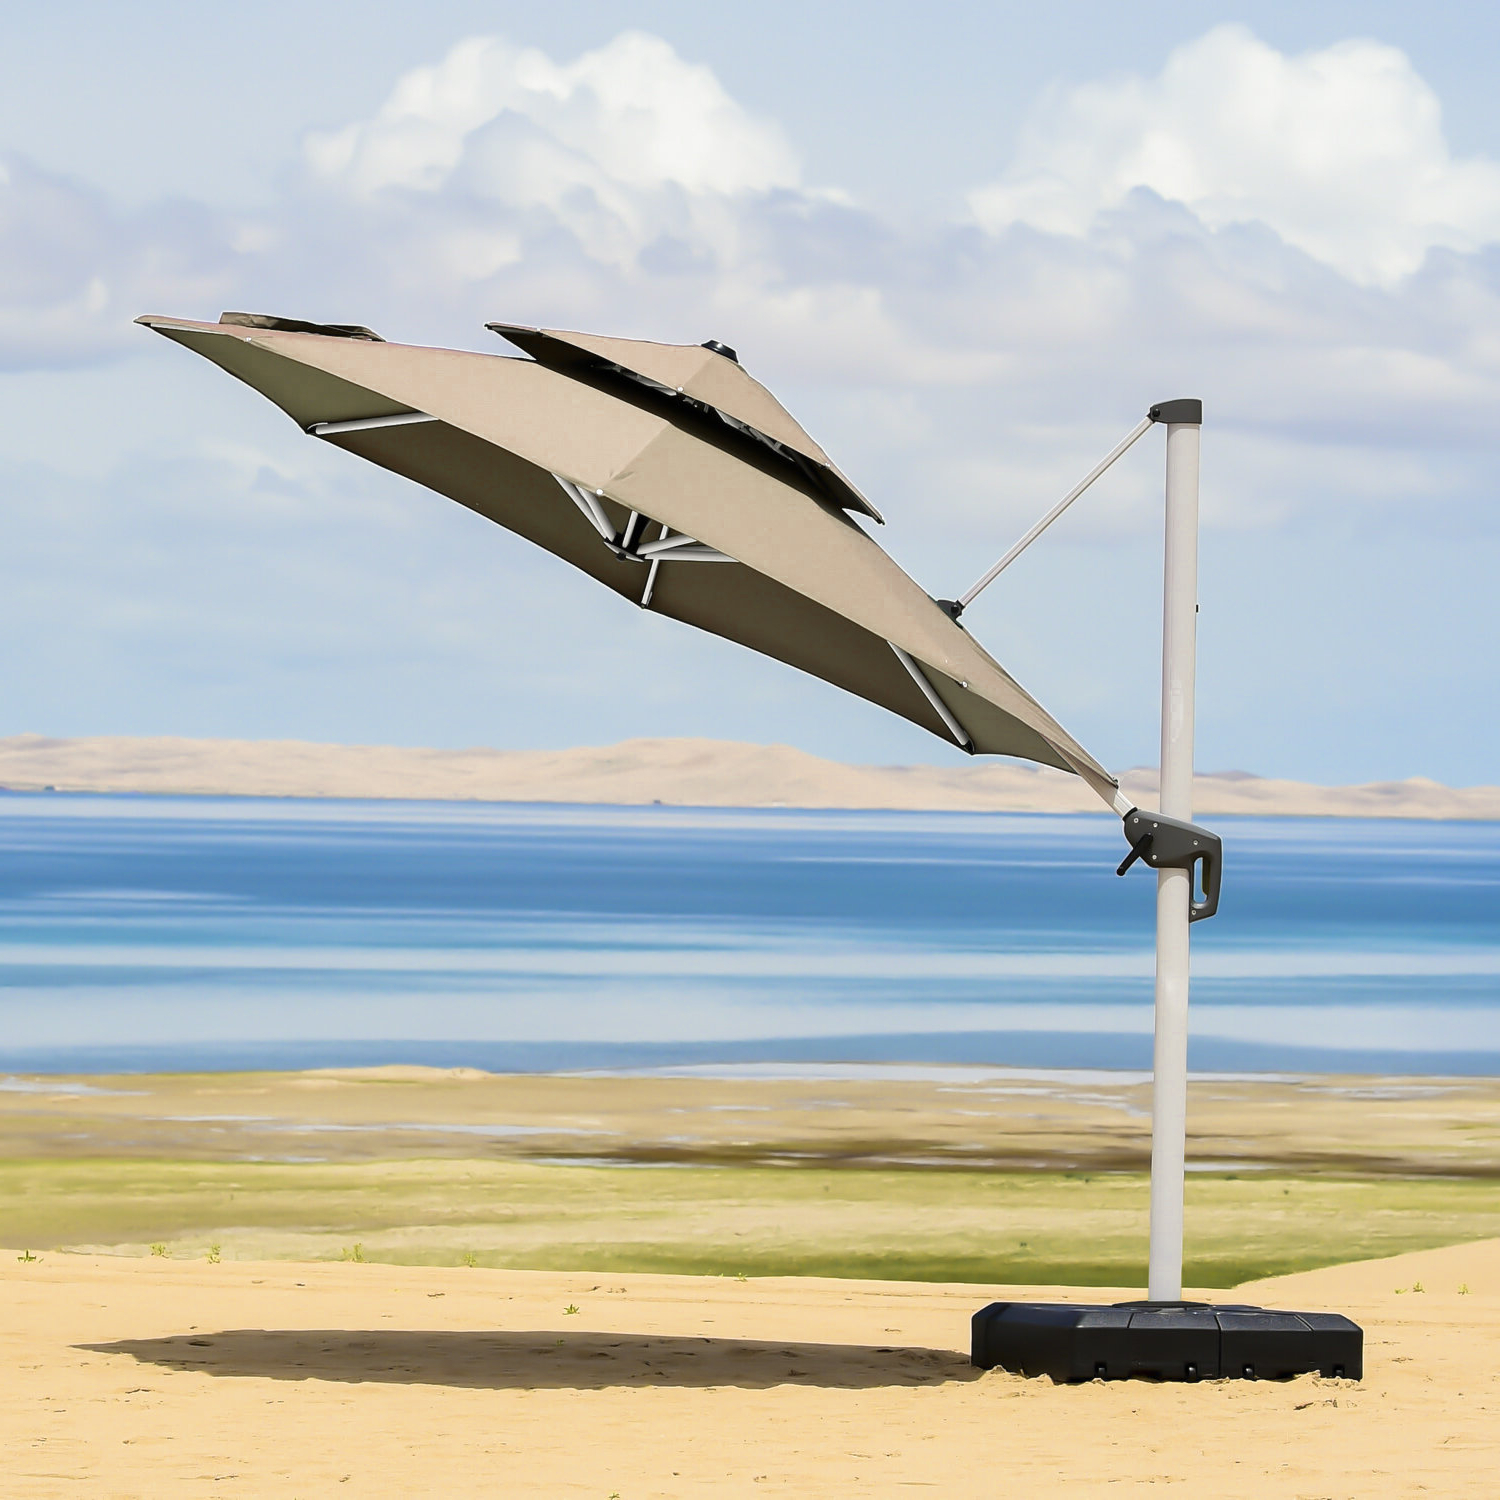 Voss Cantilever Sunbrella Umbrellas For Latest Mablethorpe 12' Cantilever Umbrella (View 20 of 20)